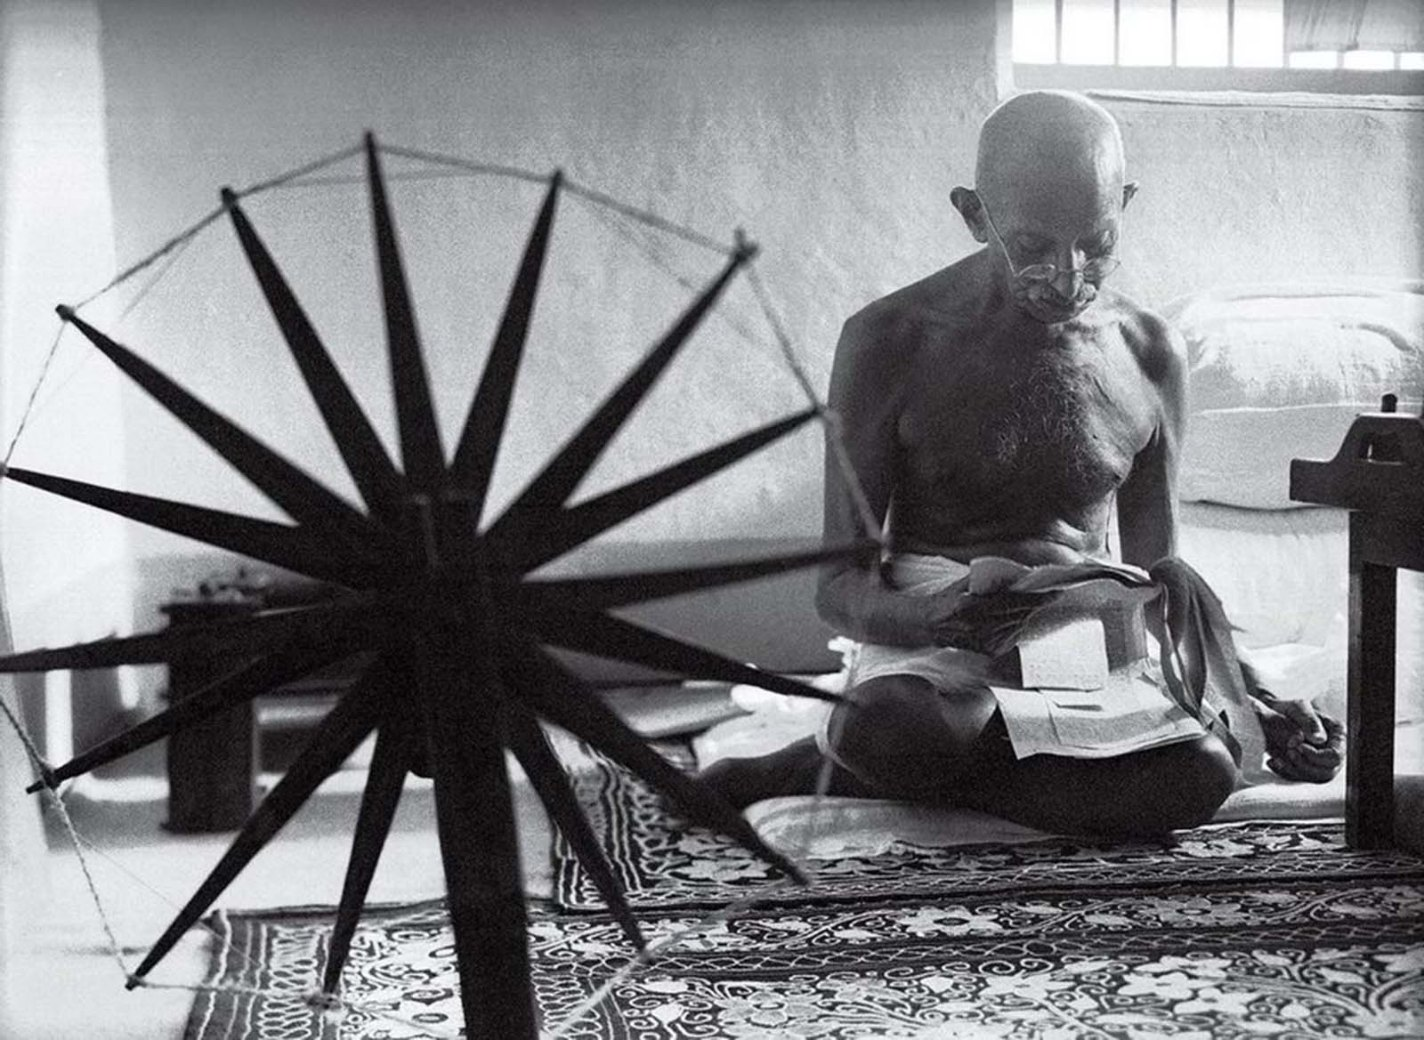 history photo Gandhi and the Spinning Wheel, Margaret Bourke-White, 1946